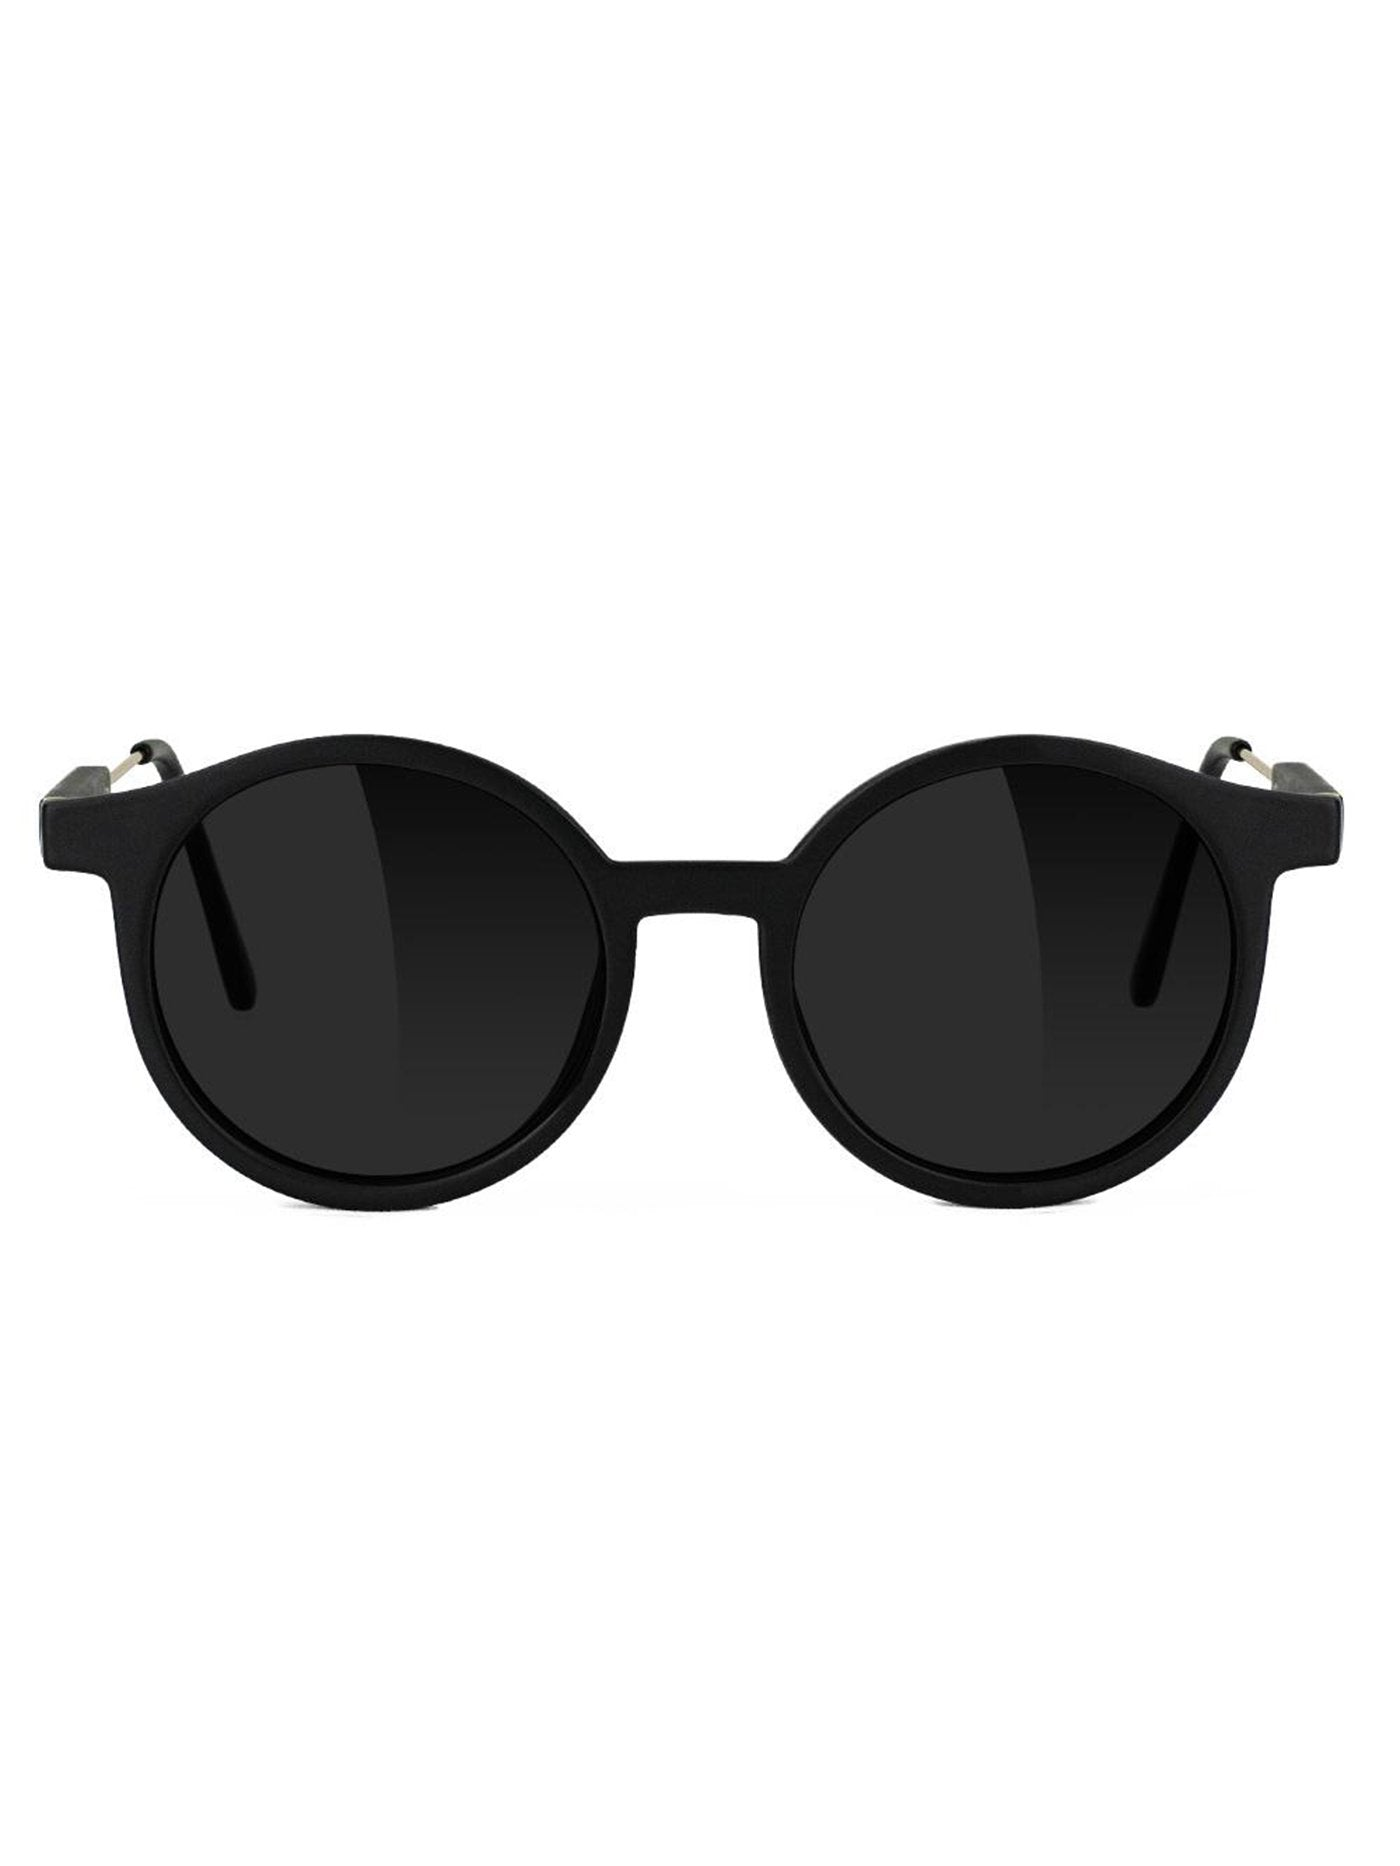 BLACK POLARIZED